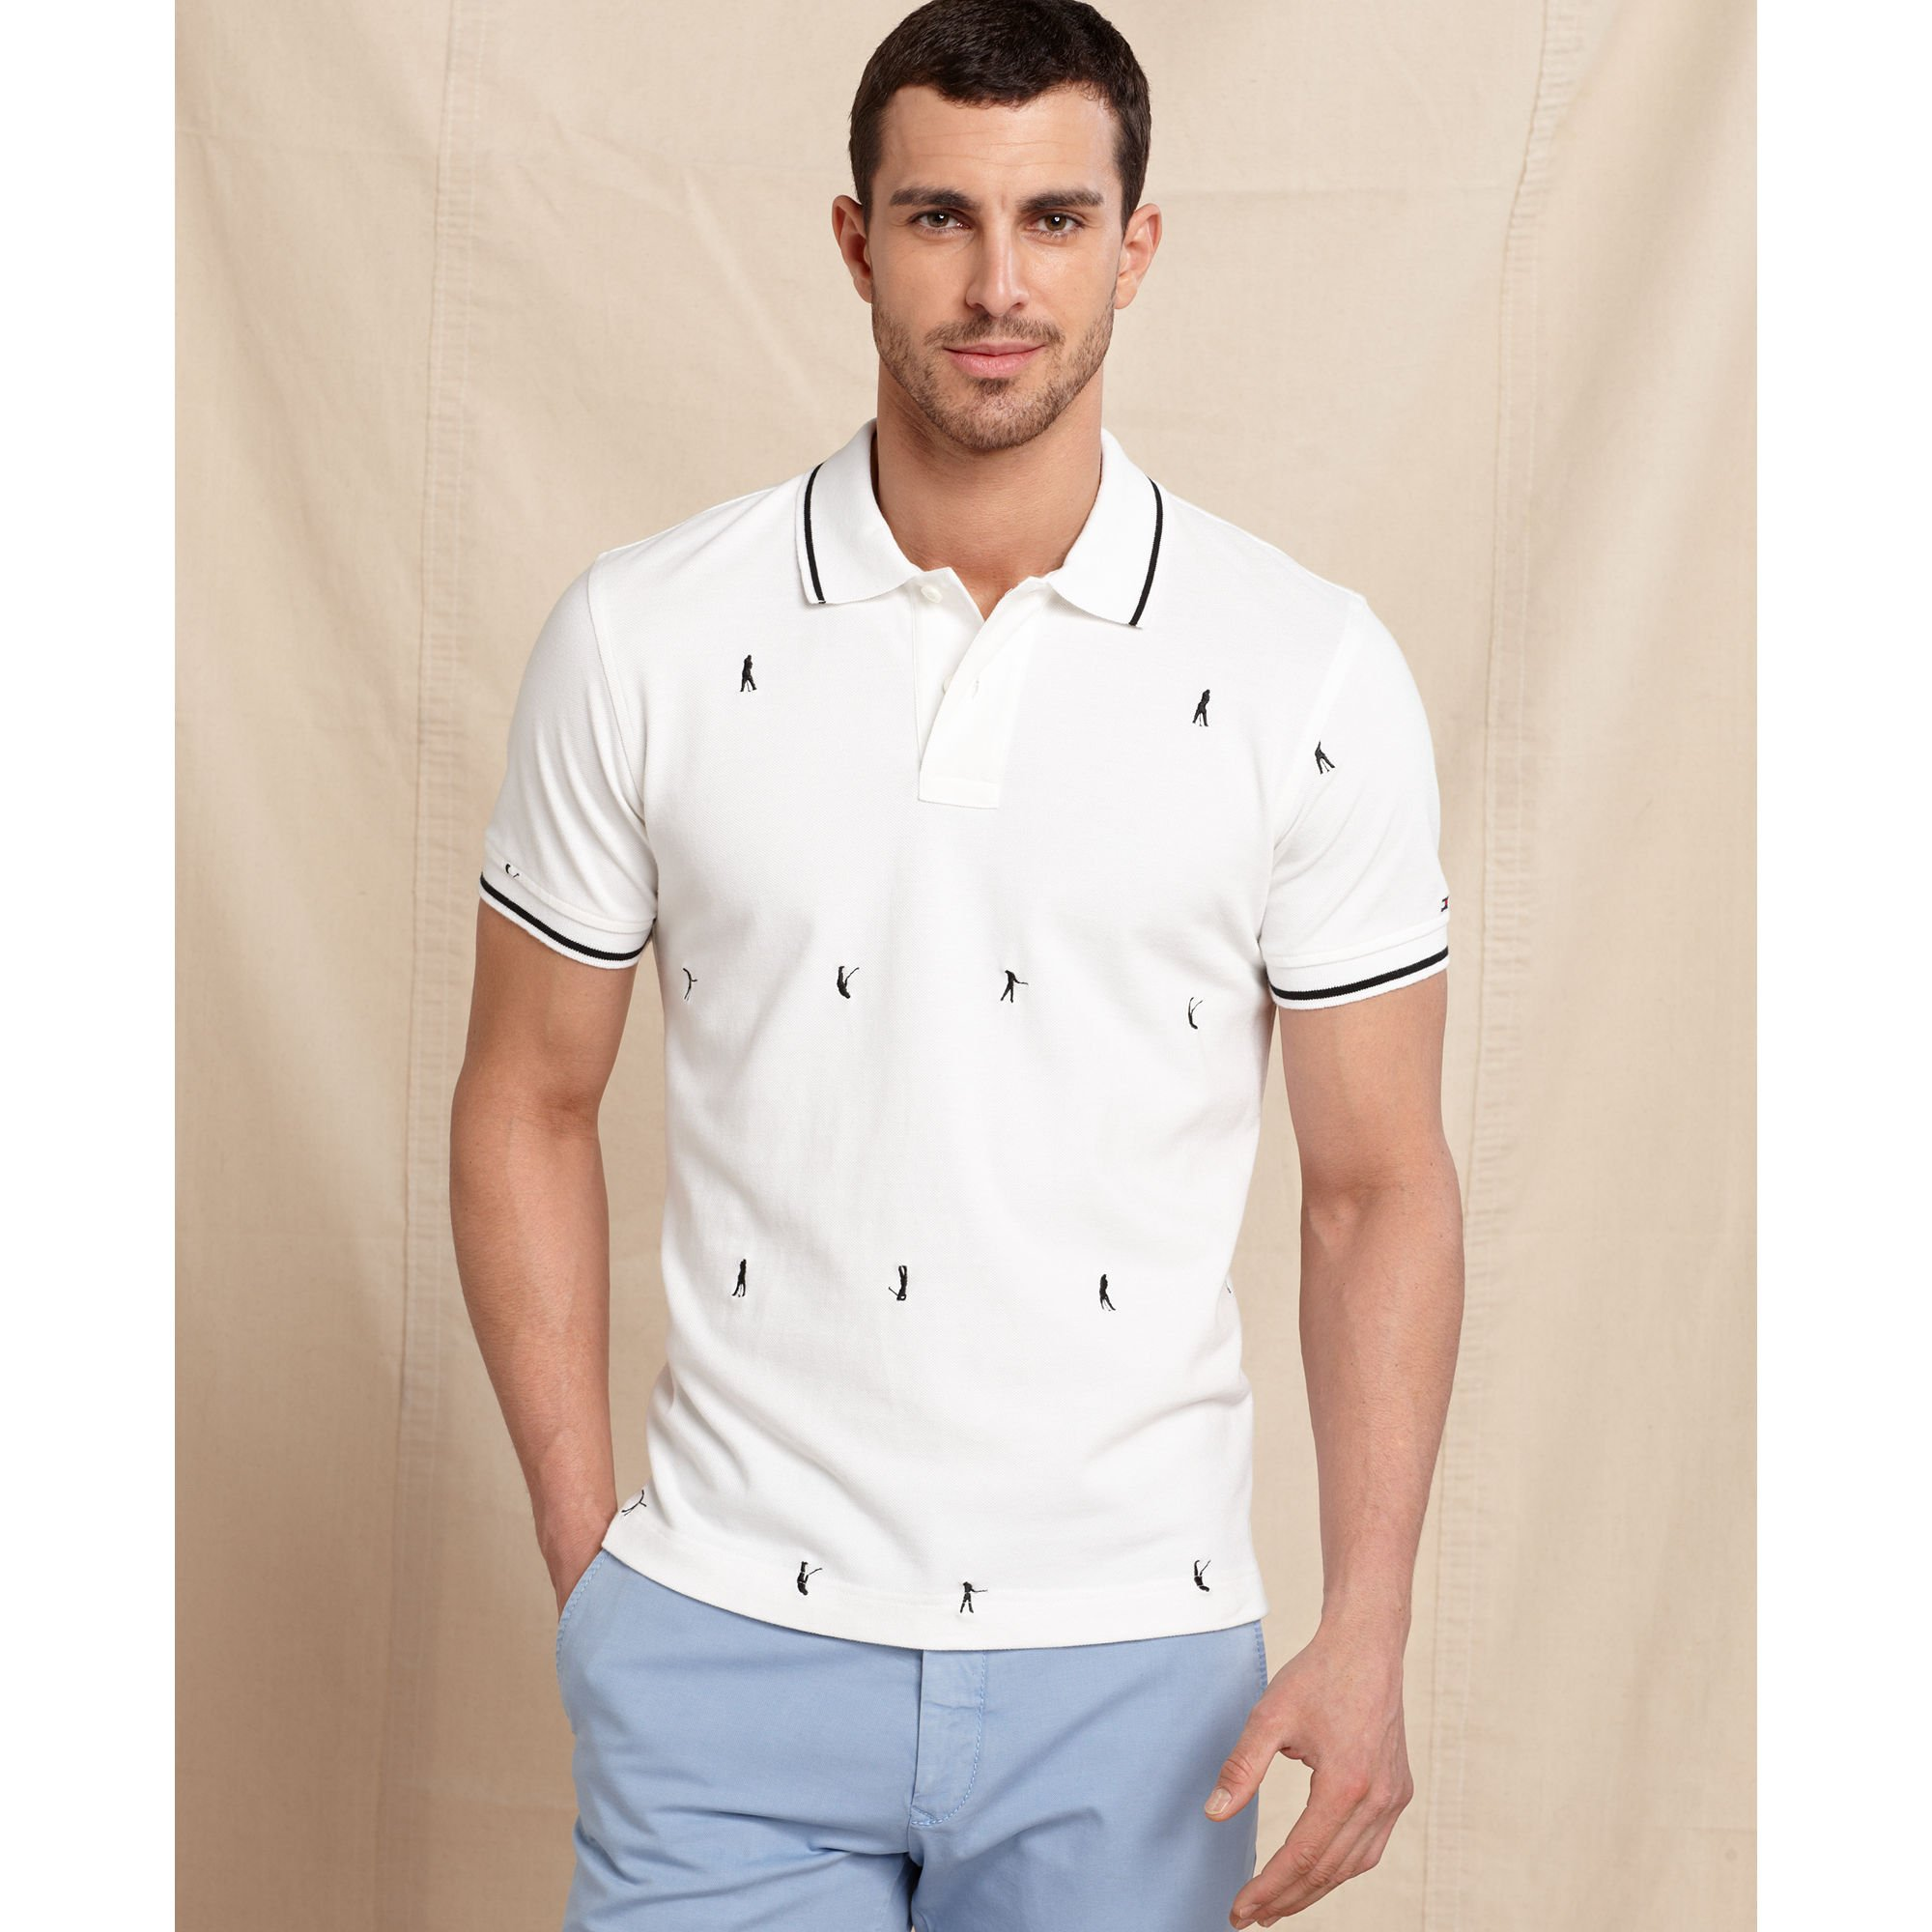 7715c237 Tommy Hilfiger Palmer Slim Fit Print Polo Shirt in White for Men - Lyst